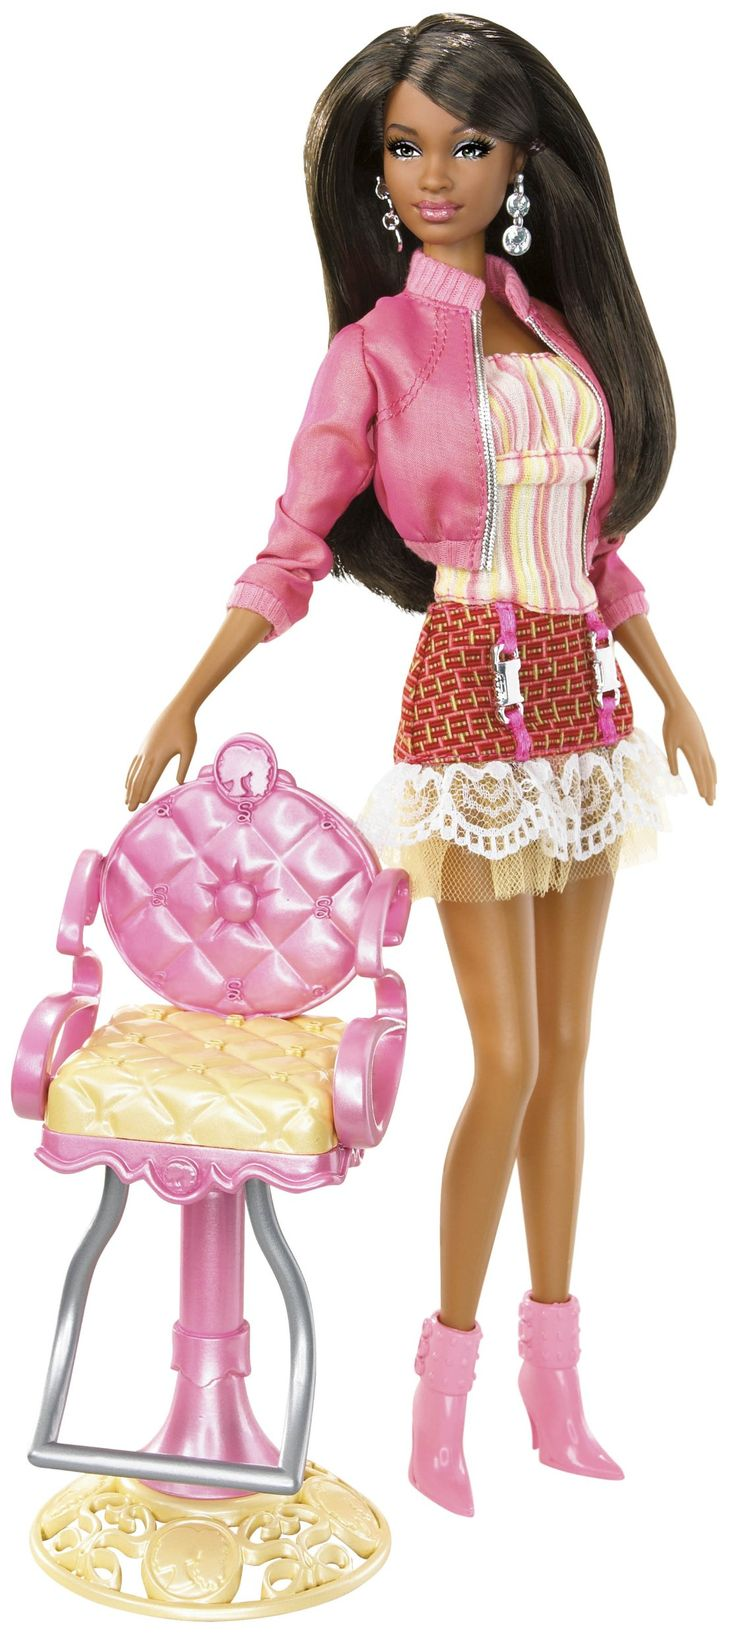 Barbie So In Style Stylin Hair Grace Doll Toys Games Barbie Maravillosa